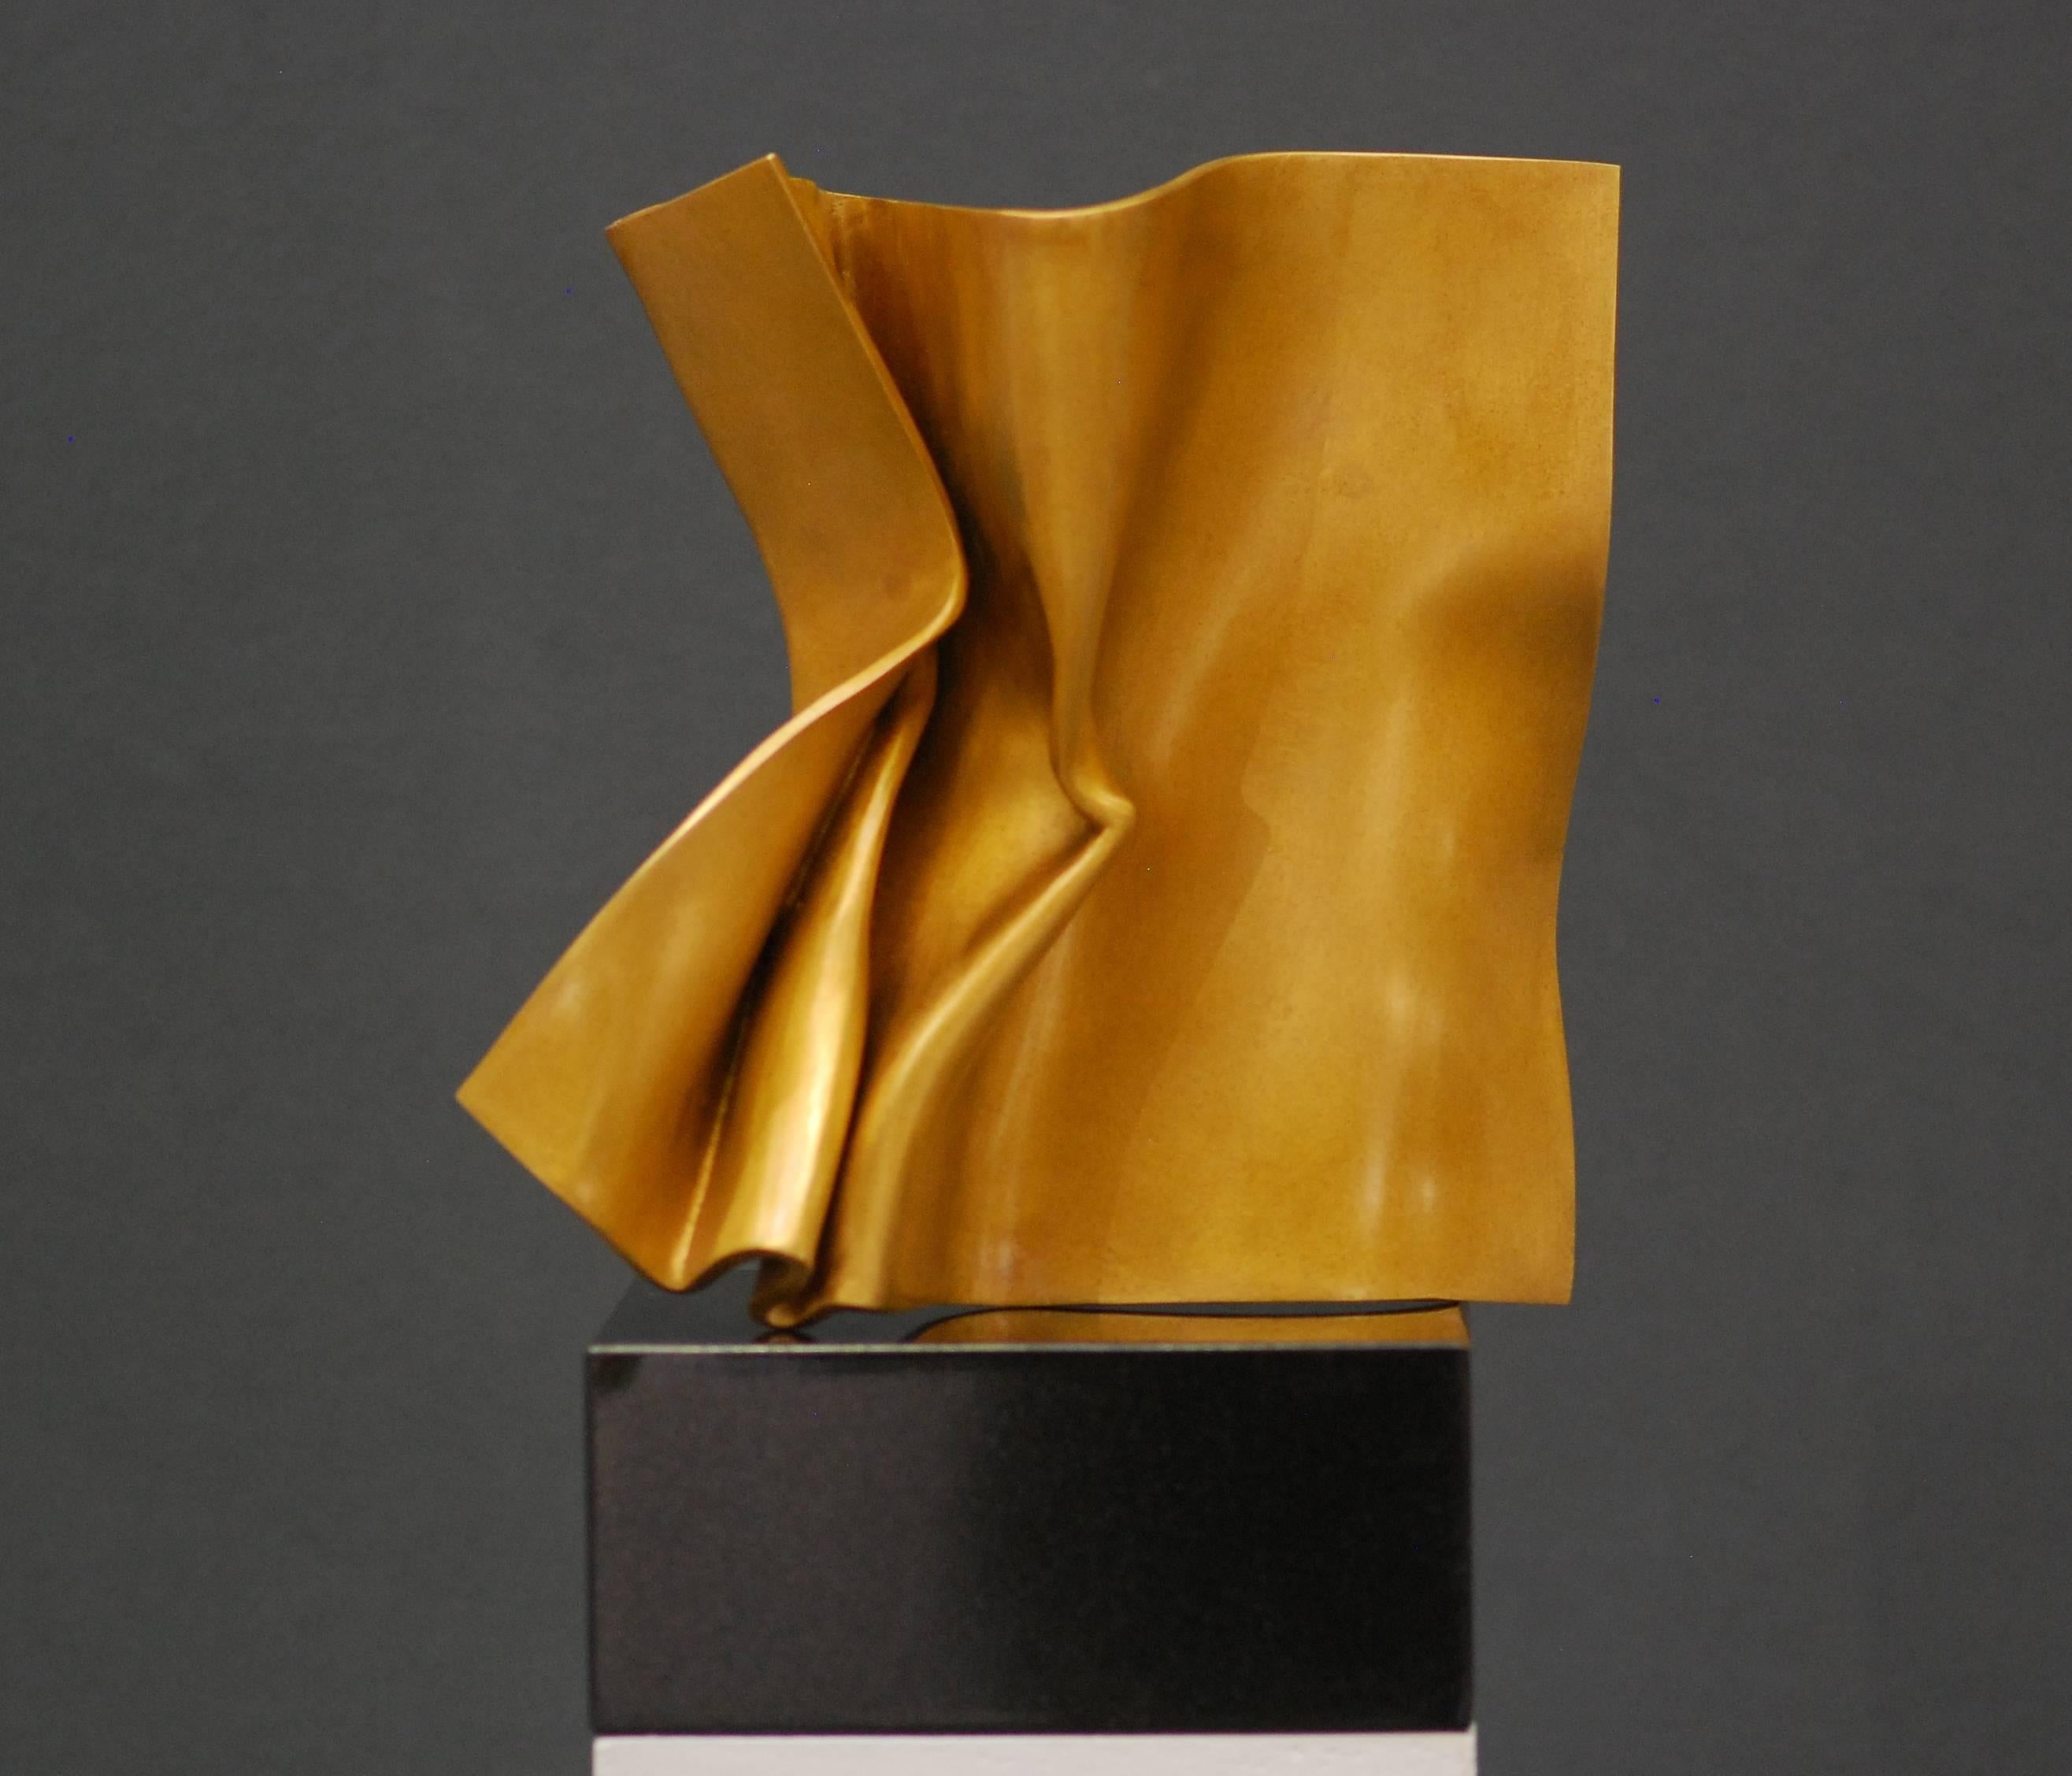 Golden Fold by Kuno Vollet - Contemporary polished Bronze sculpture granite base